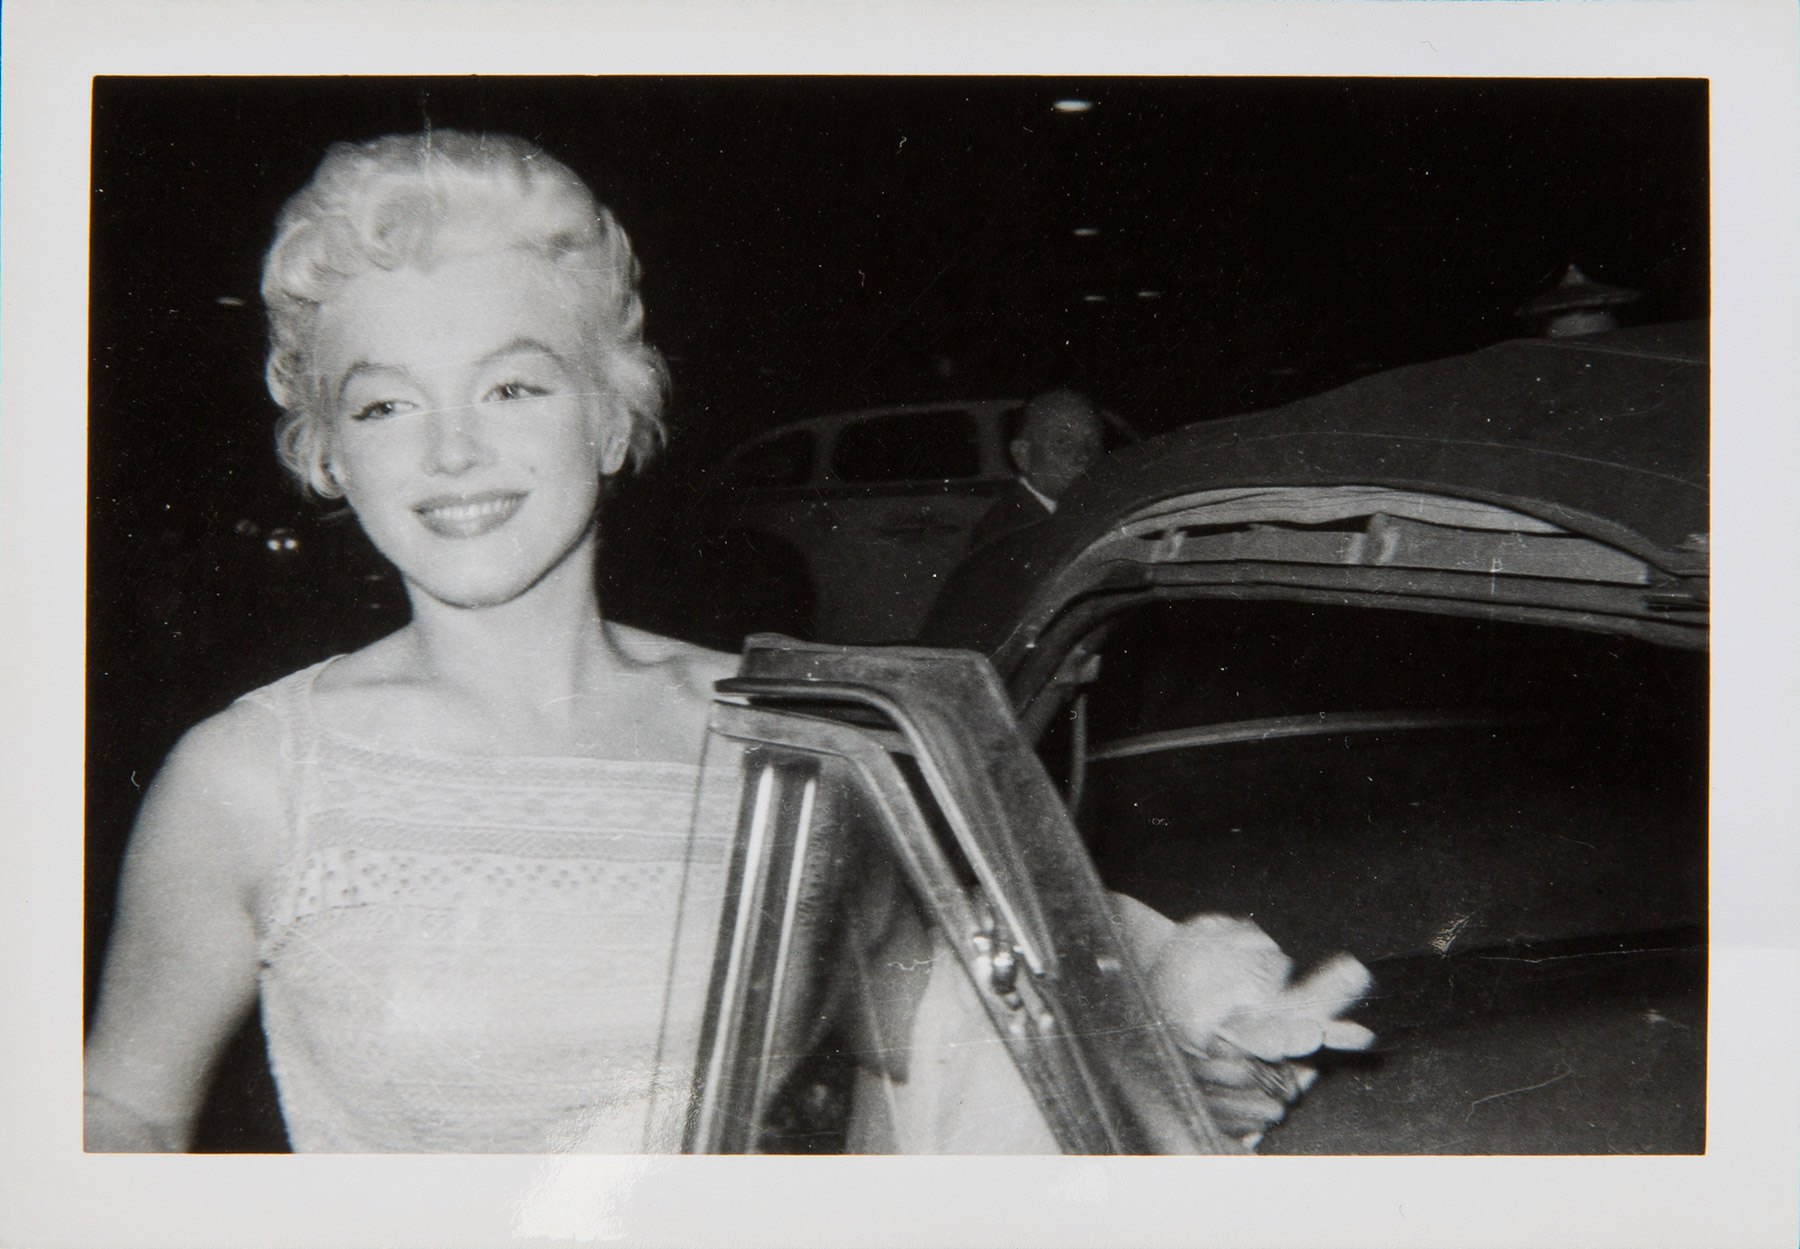 Marilyn Monroe in 1955, possibly going to a birthday party for Elia Kazan on September 7.